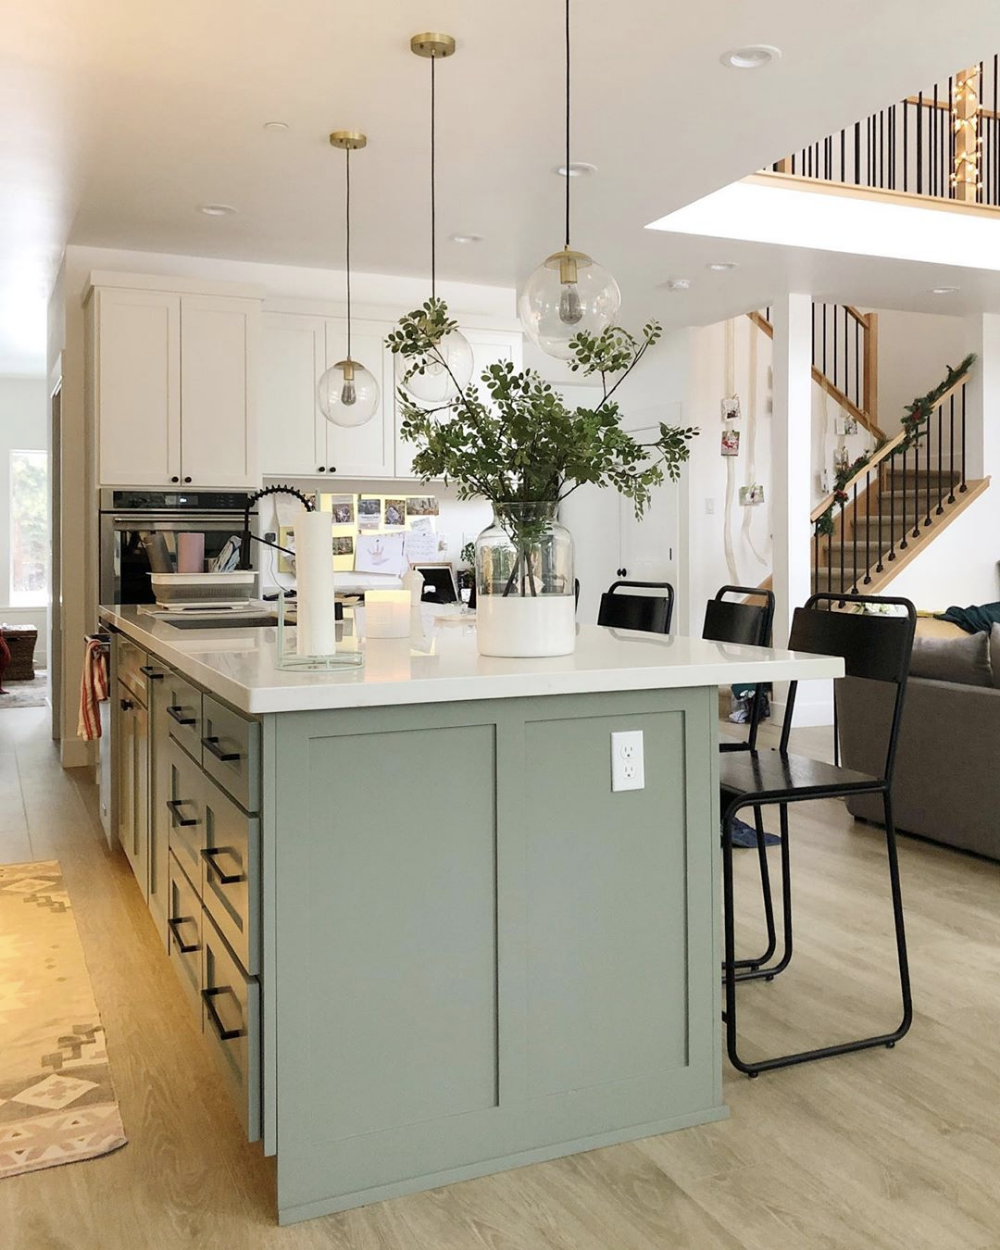 Color Inspiration - Green Kitchen Cabinets